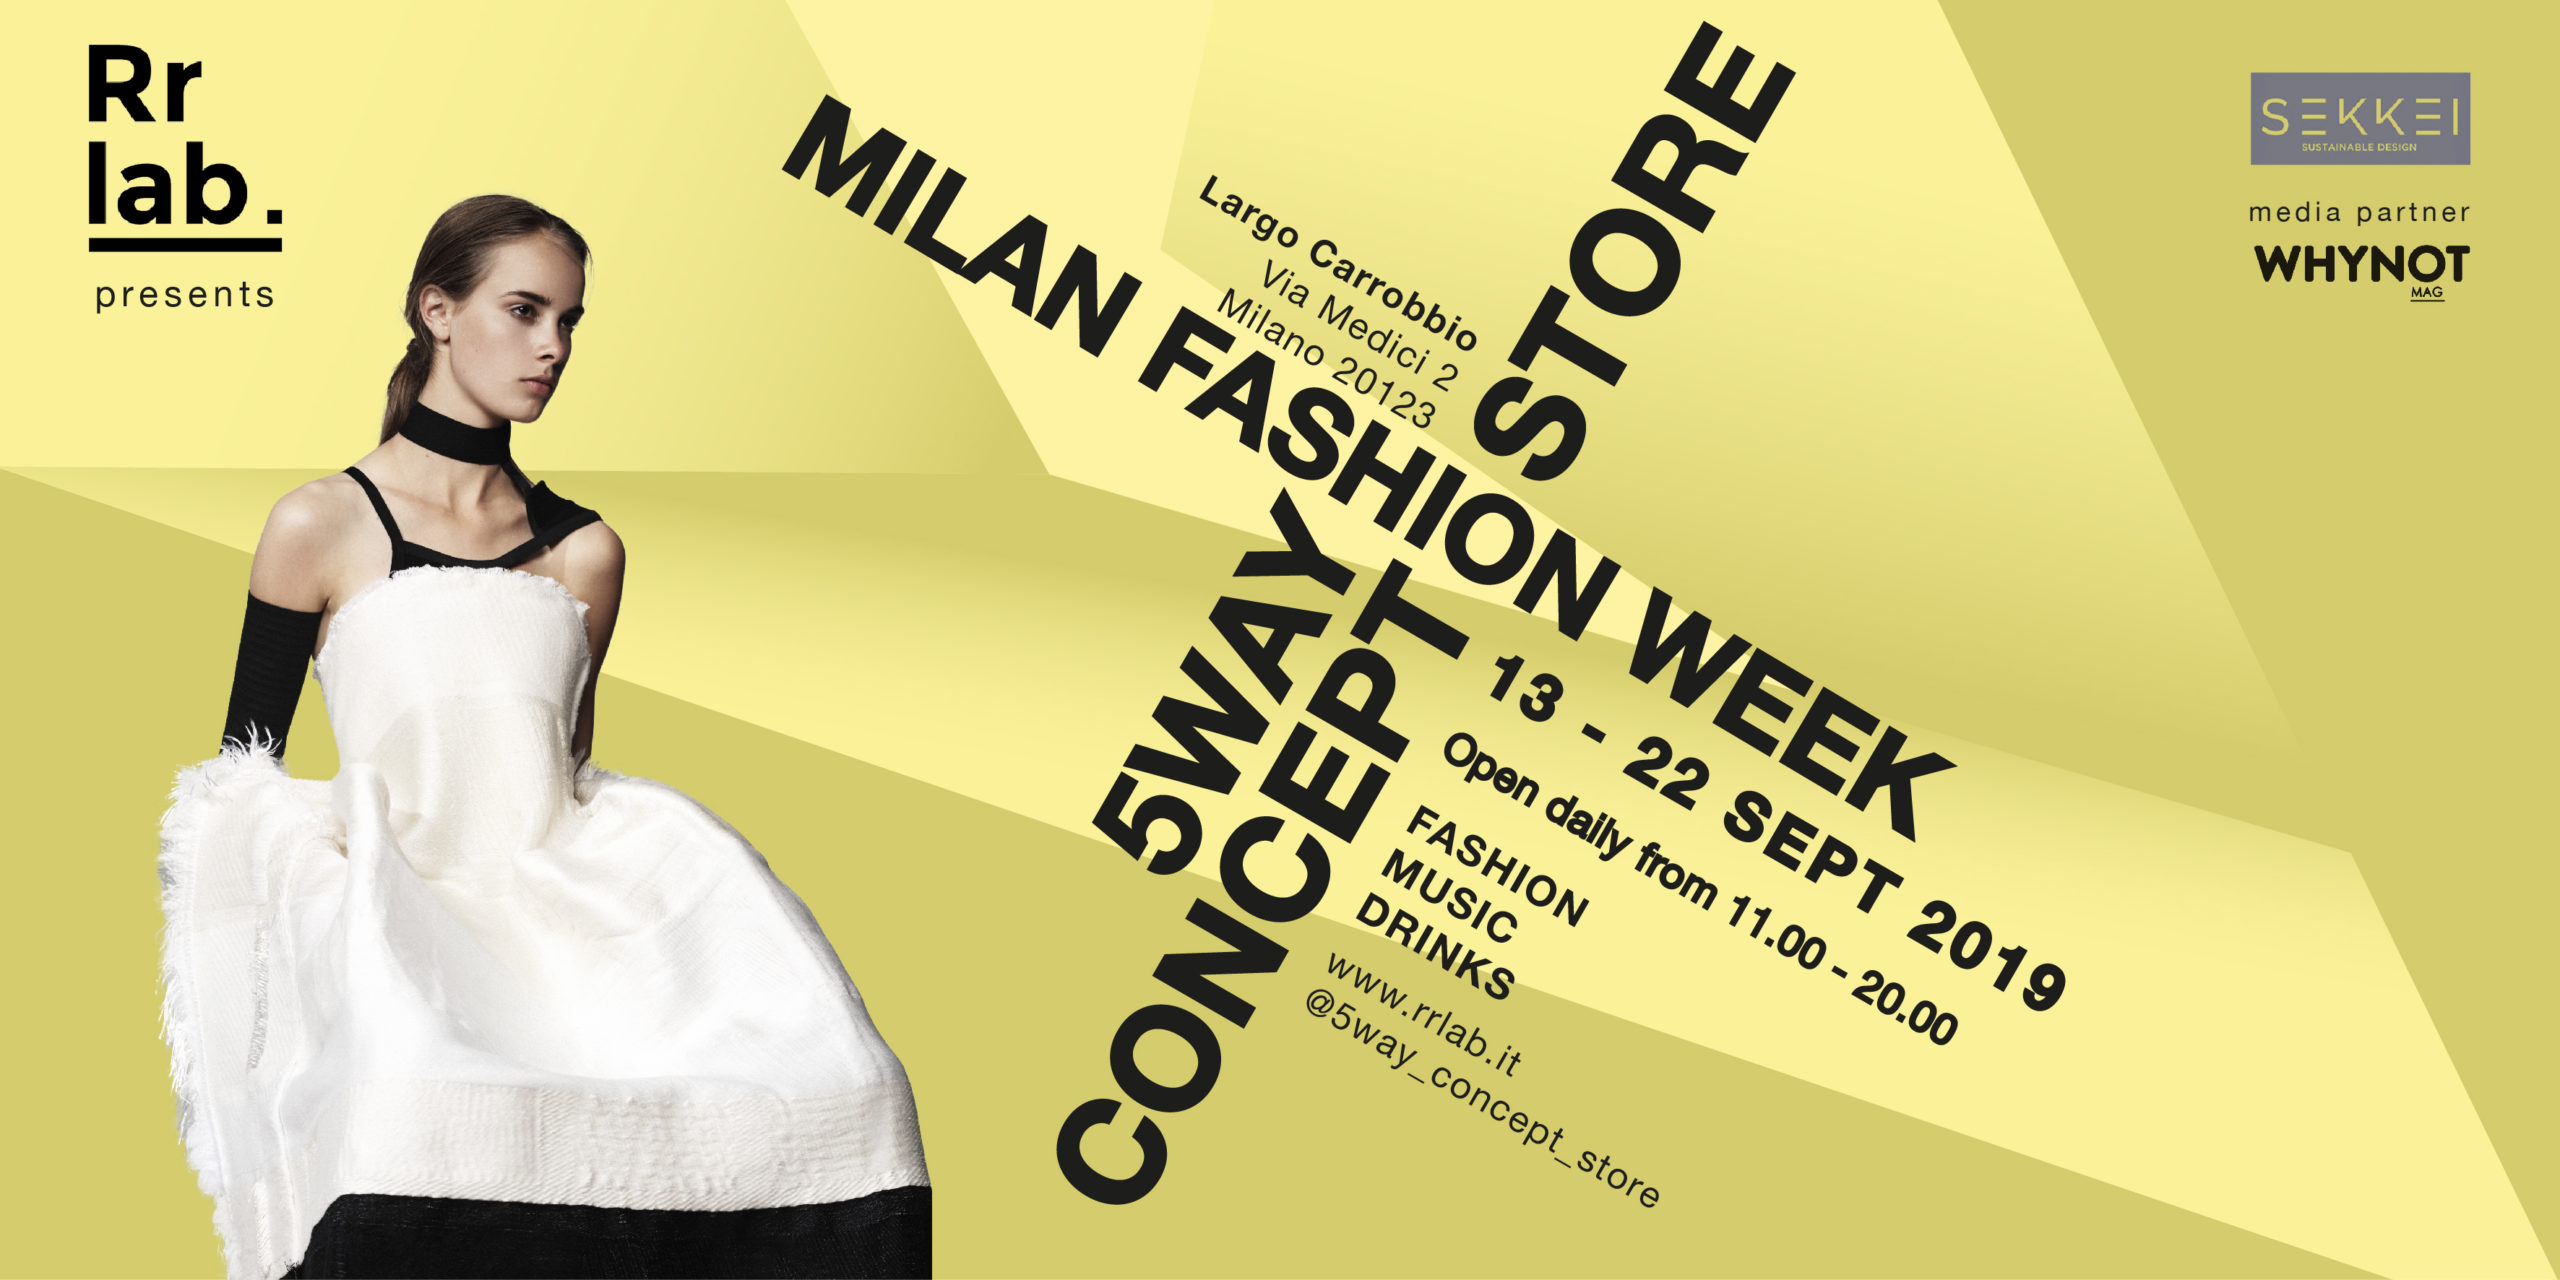 5way concept store milano fashion week